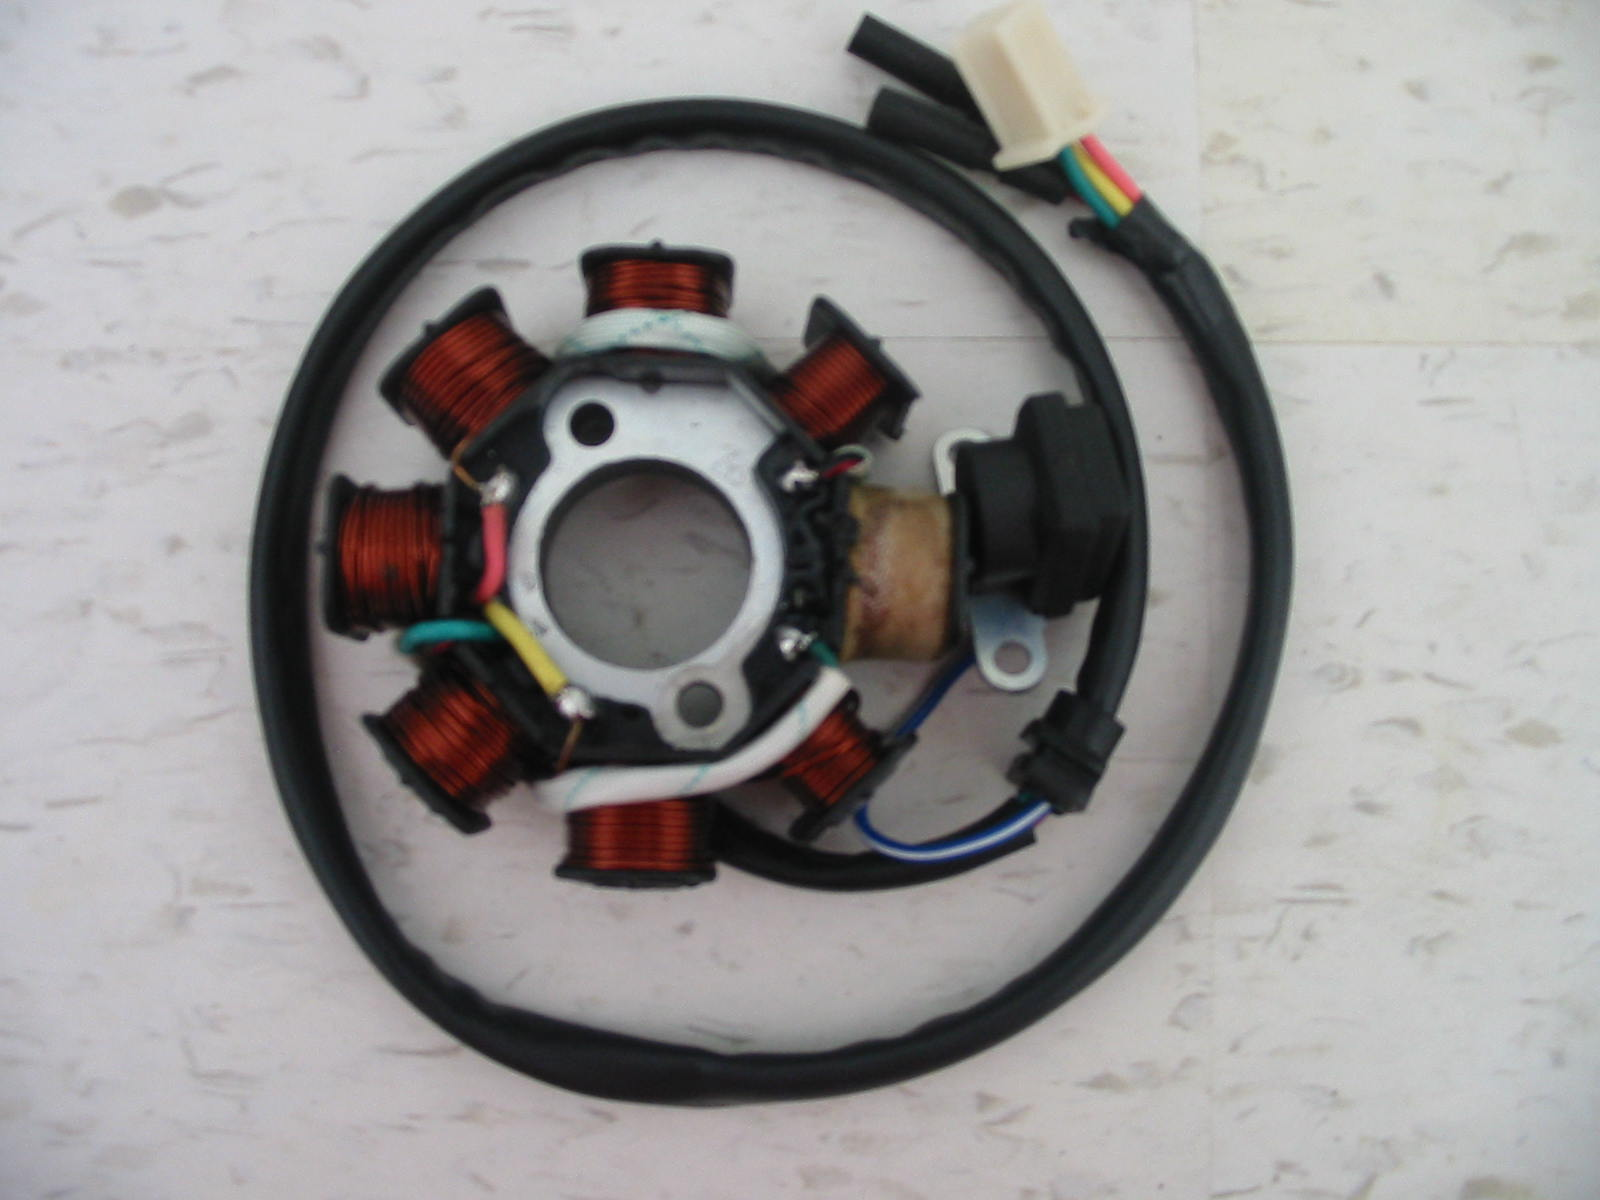 article_1_1266724516 how it works! gy6 stator unit buggydepot com 150cc knowledgebase gy6 8 pole stator wiring diagram at n-0.co